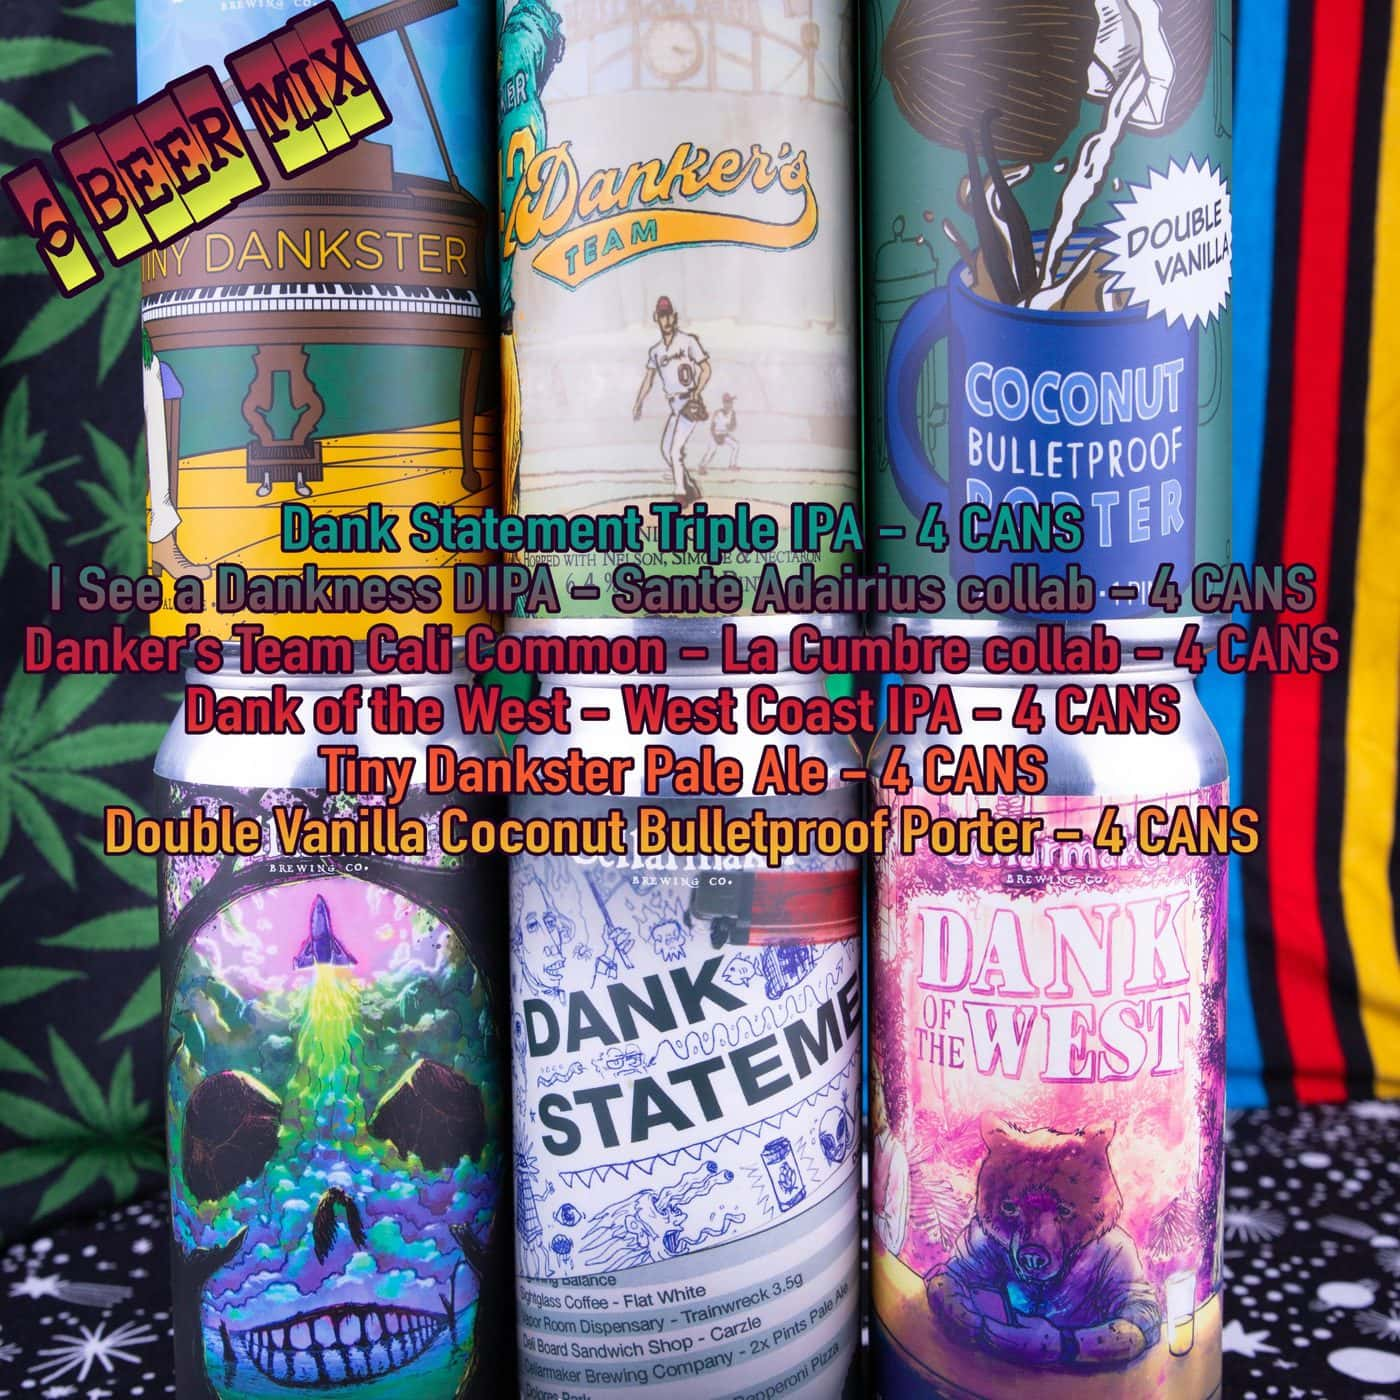 FULL CASE 24 CANS 6 BEER MIX – 4 Dank Statement TIPA, 4 I See A Dankness DIPA – Sante Adairius Collab,  4 Danker's Team Cali Common – La Cumbre Collab, 4 Dank Of The West  IPA, 4 Tiny Dankster Pale Ale And 4 Dub Vanilla Bulletproof Coconut Coffee Porter – Shipping Out Tuesday 4/13 For Next Day Delivery*